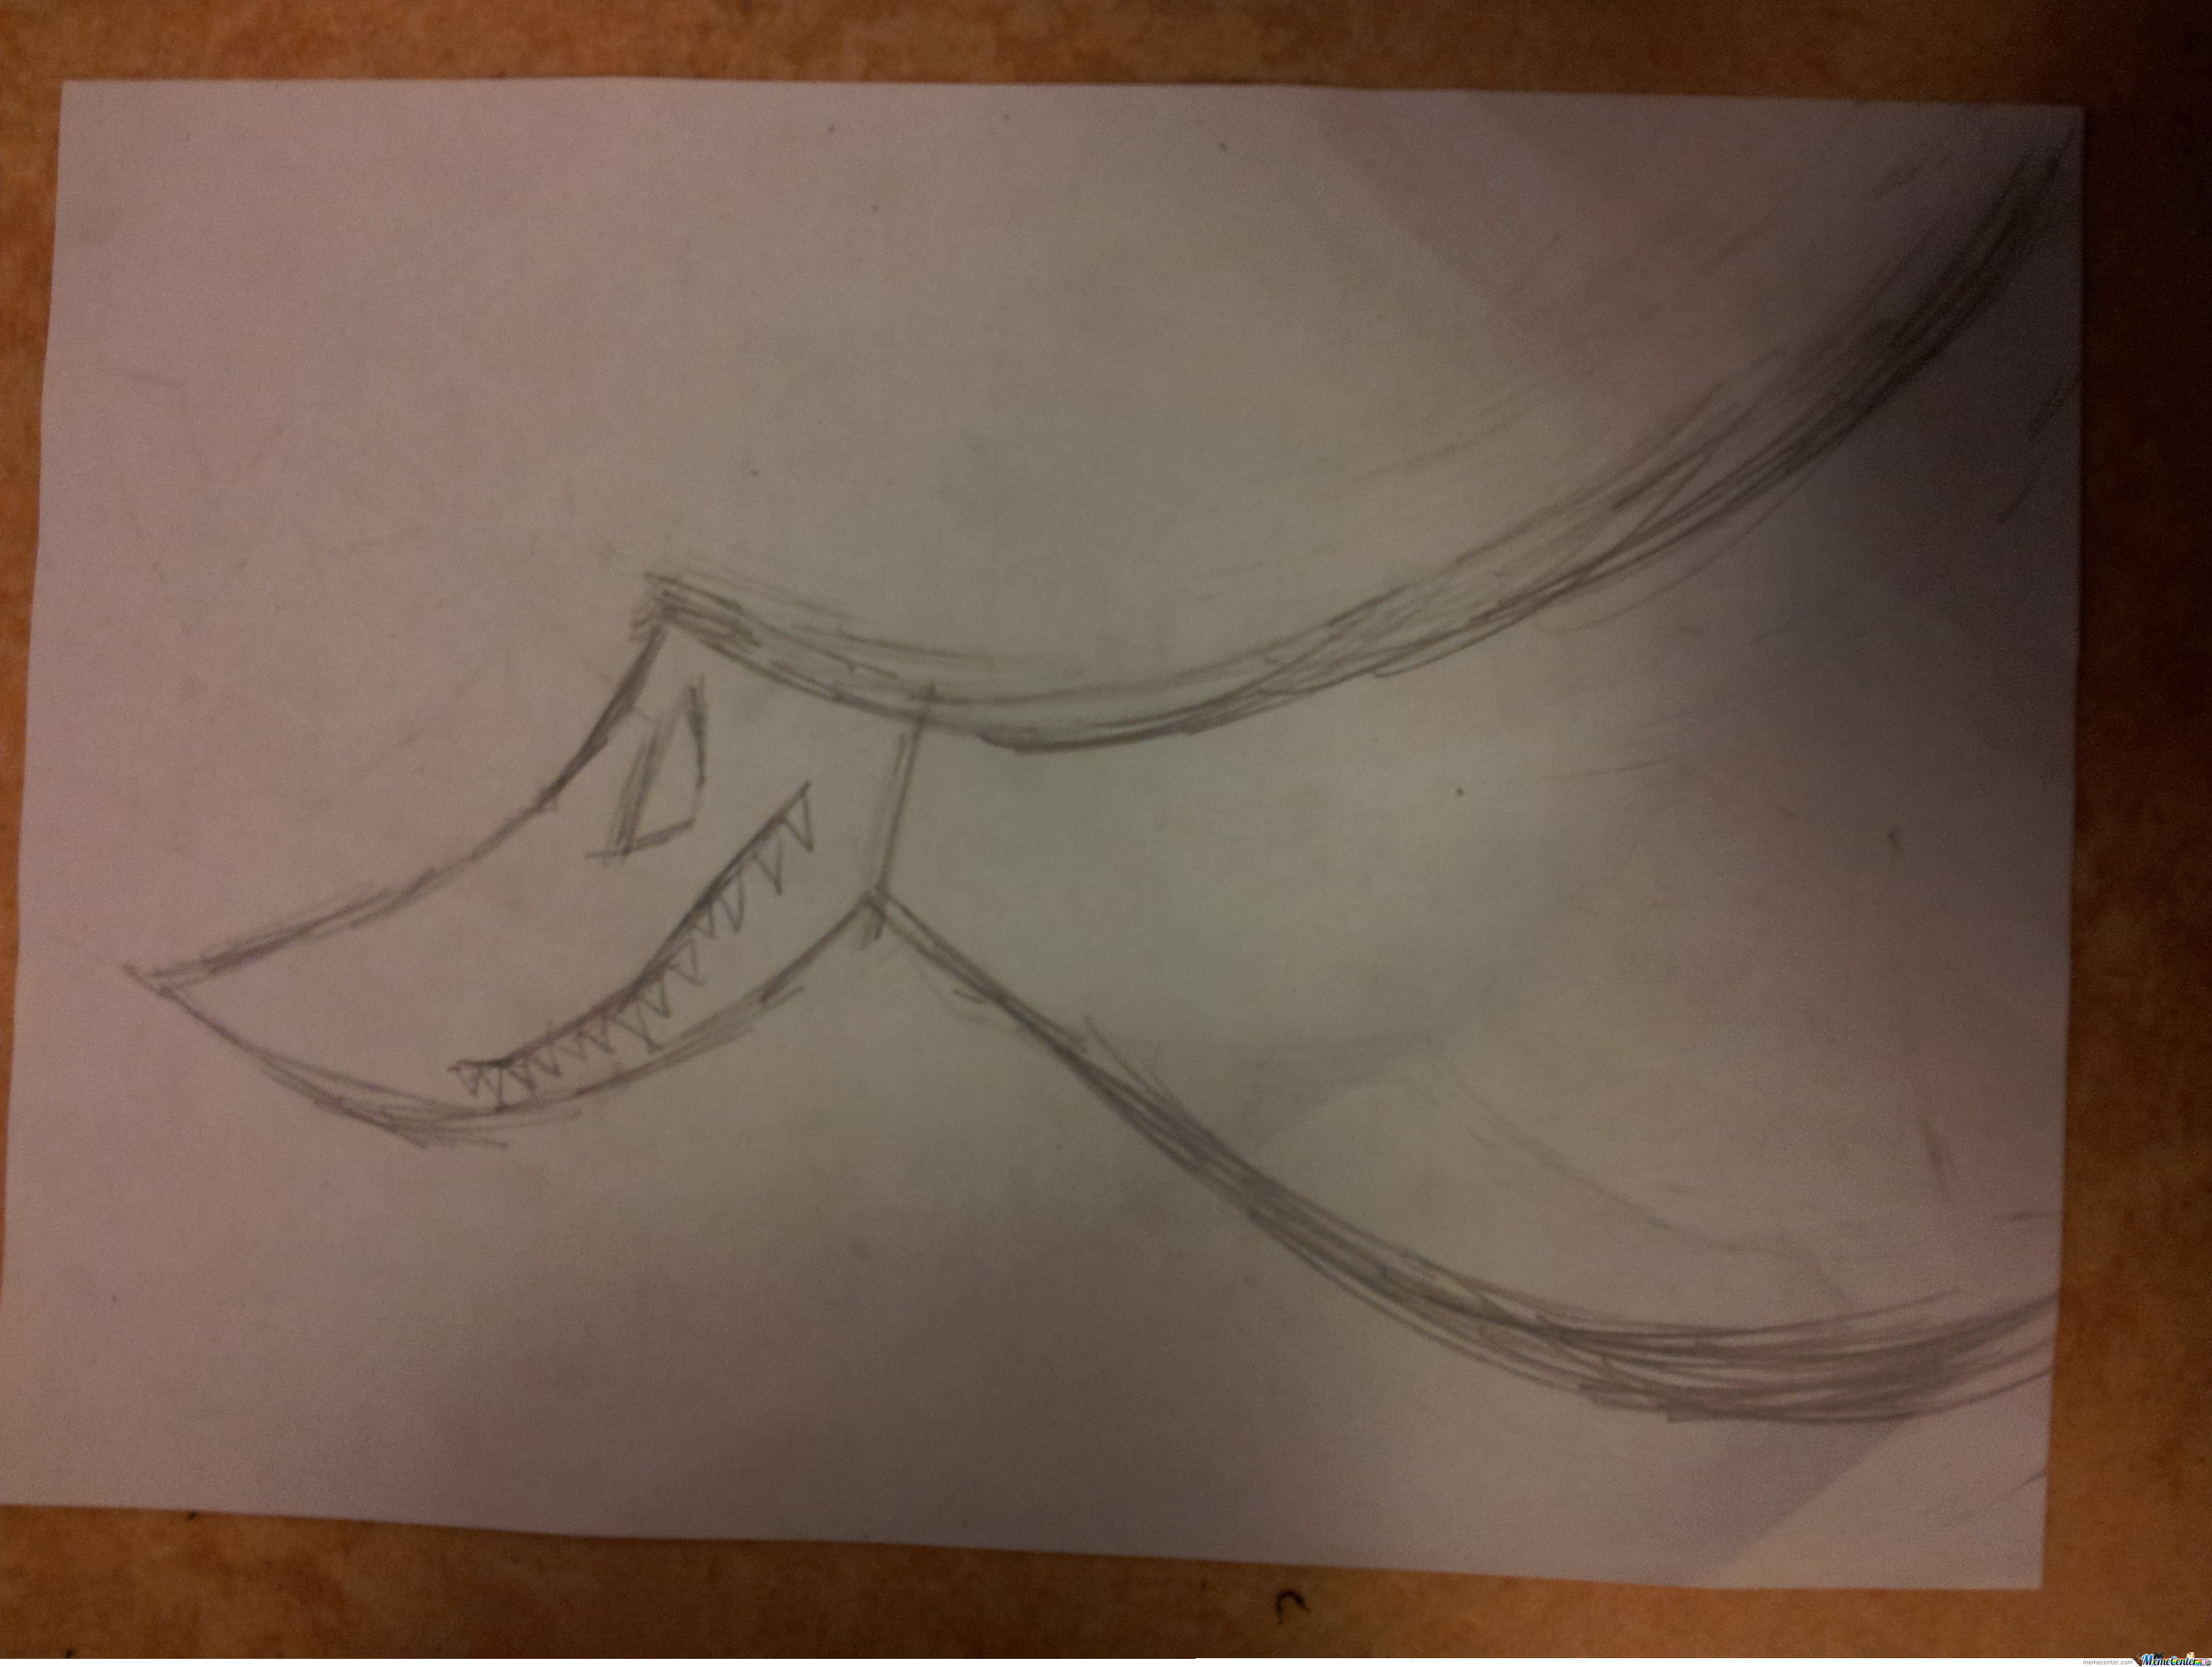 So We Had Test In School I Drew This